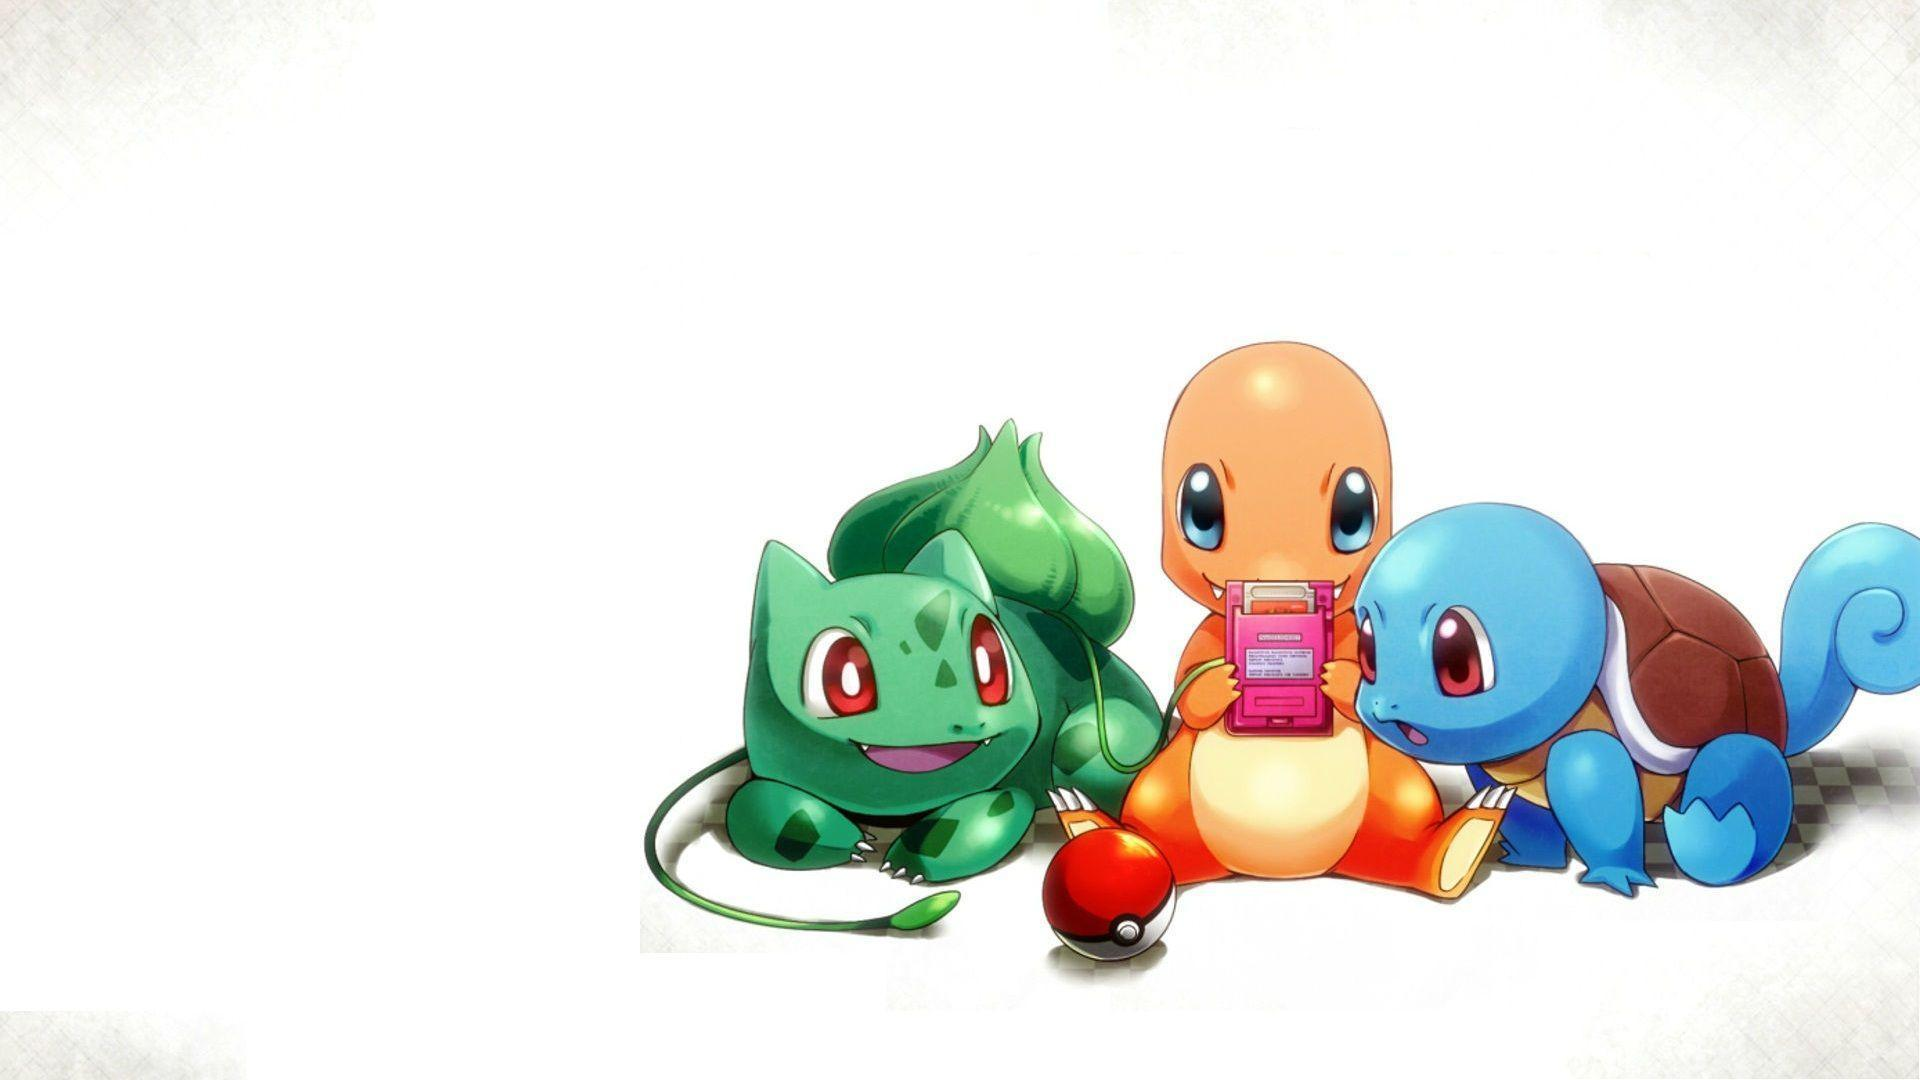 Download Pokemon Desktop Wallpaper – The Most Incredible Wallpaper You'll Ever See